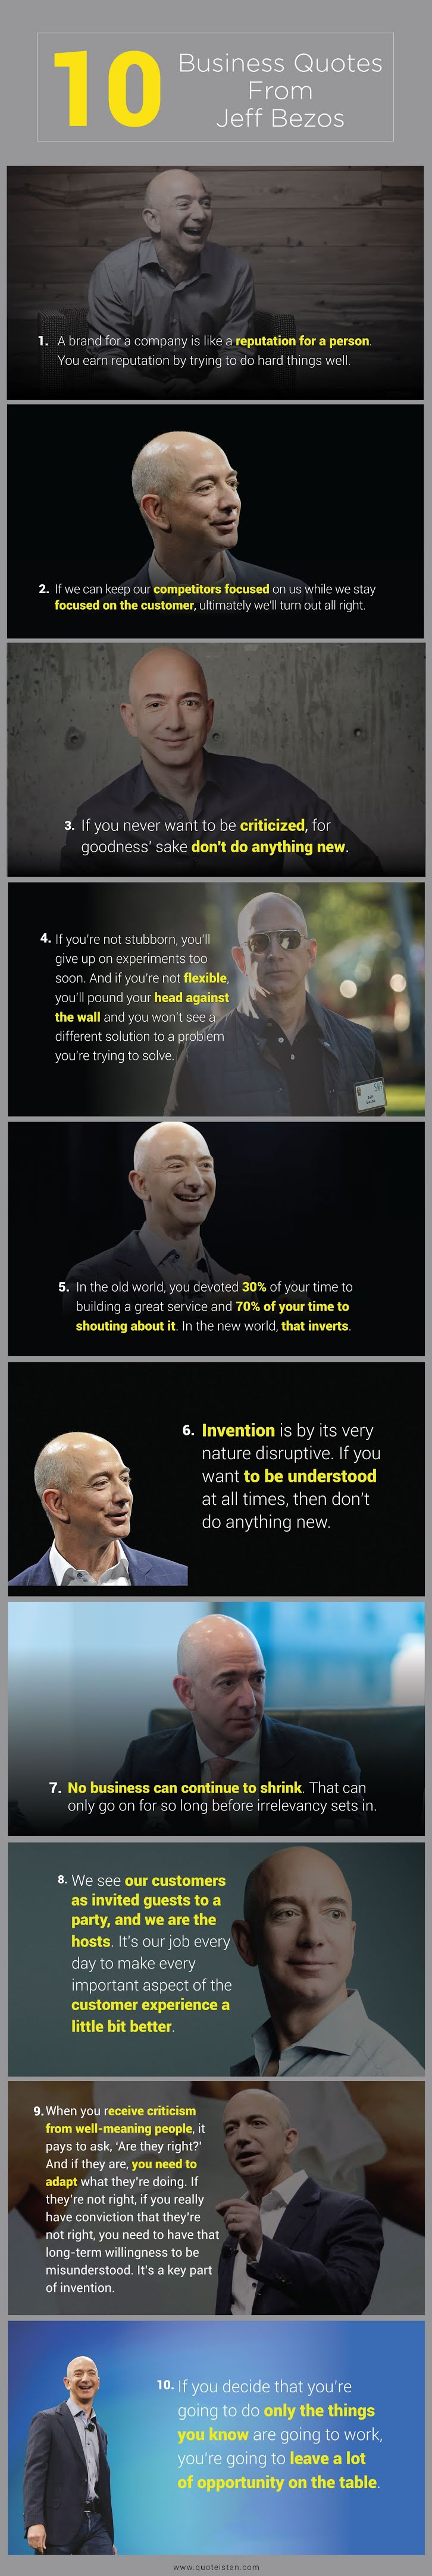 10 Business Quotes From Jeff Bezos [Infographic]